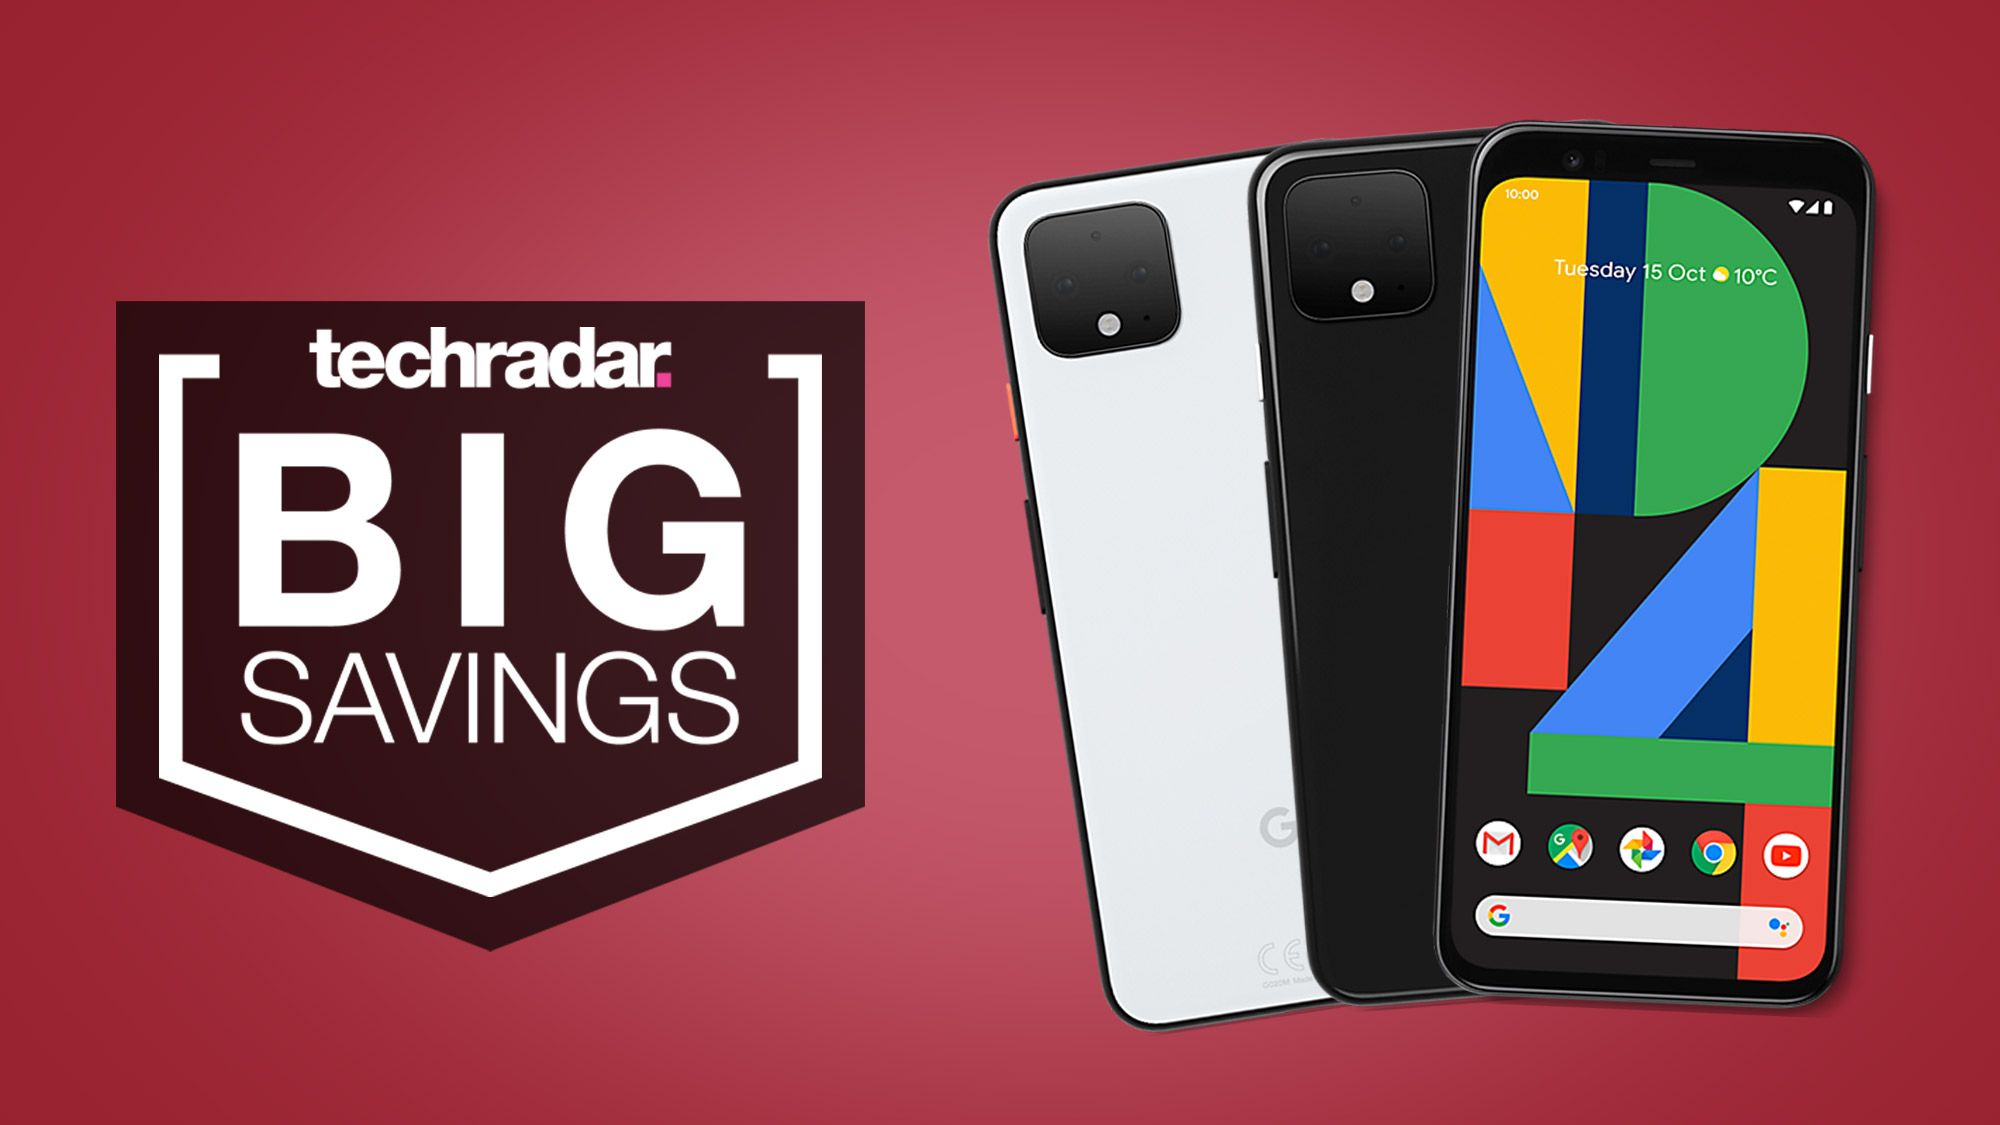 The Best Google Pixel 4 Deals And Sales For October 2020 Google Pixel Best Iphone Deals Iphone Deals